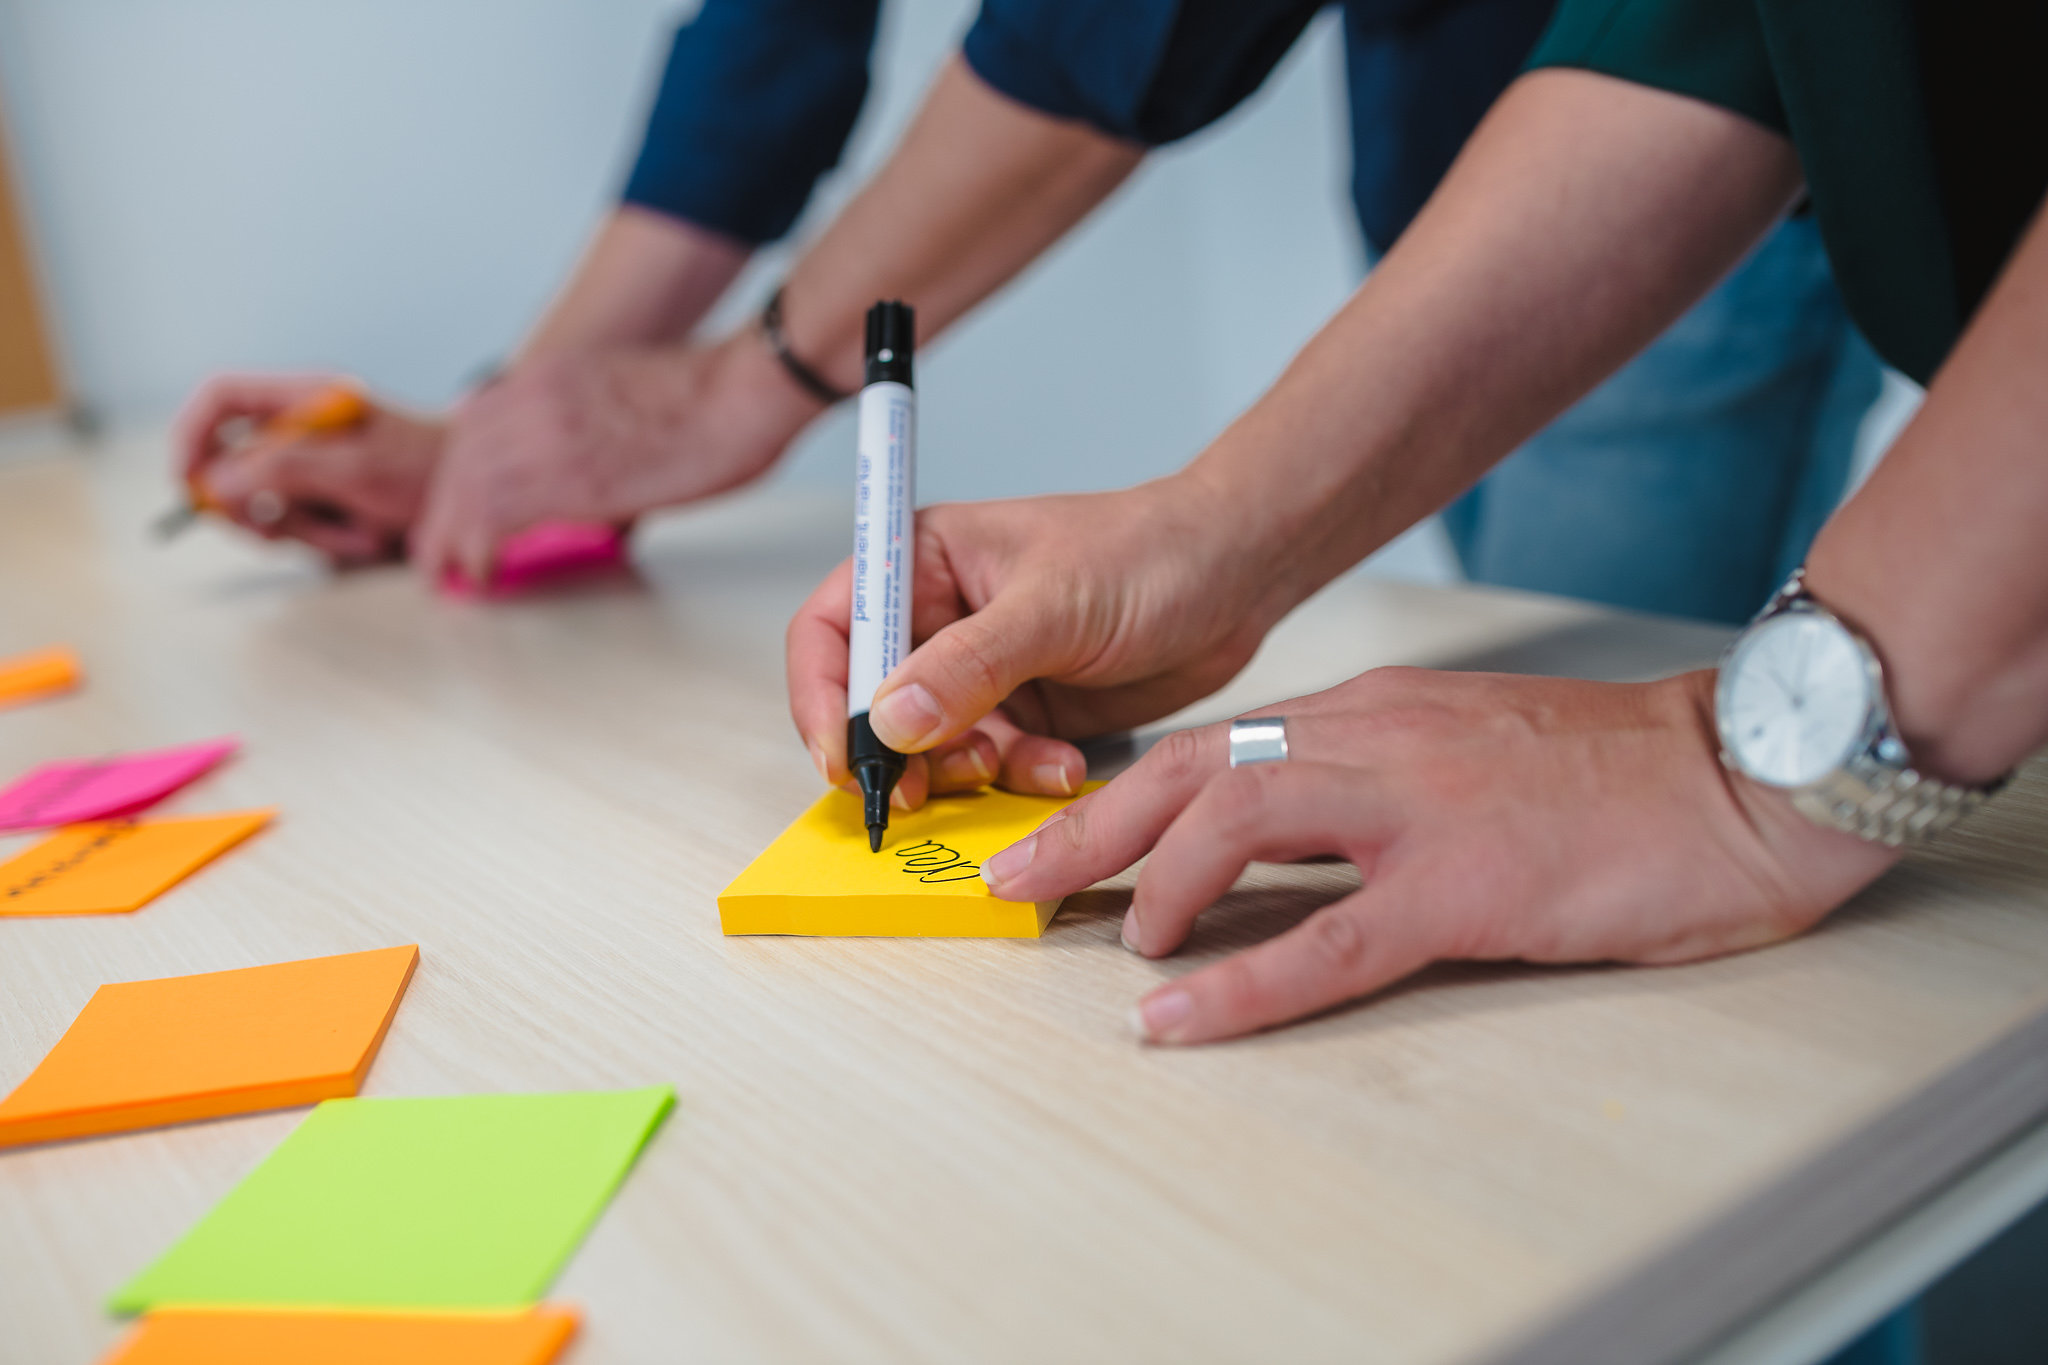 Prototyping Work - Reinvent your Work, one practice at a time!